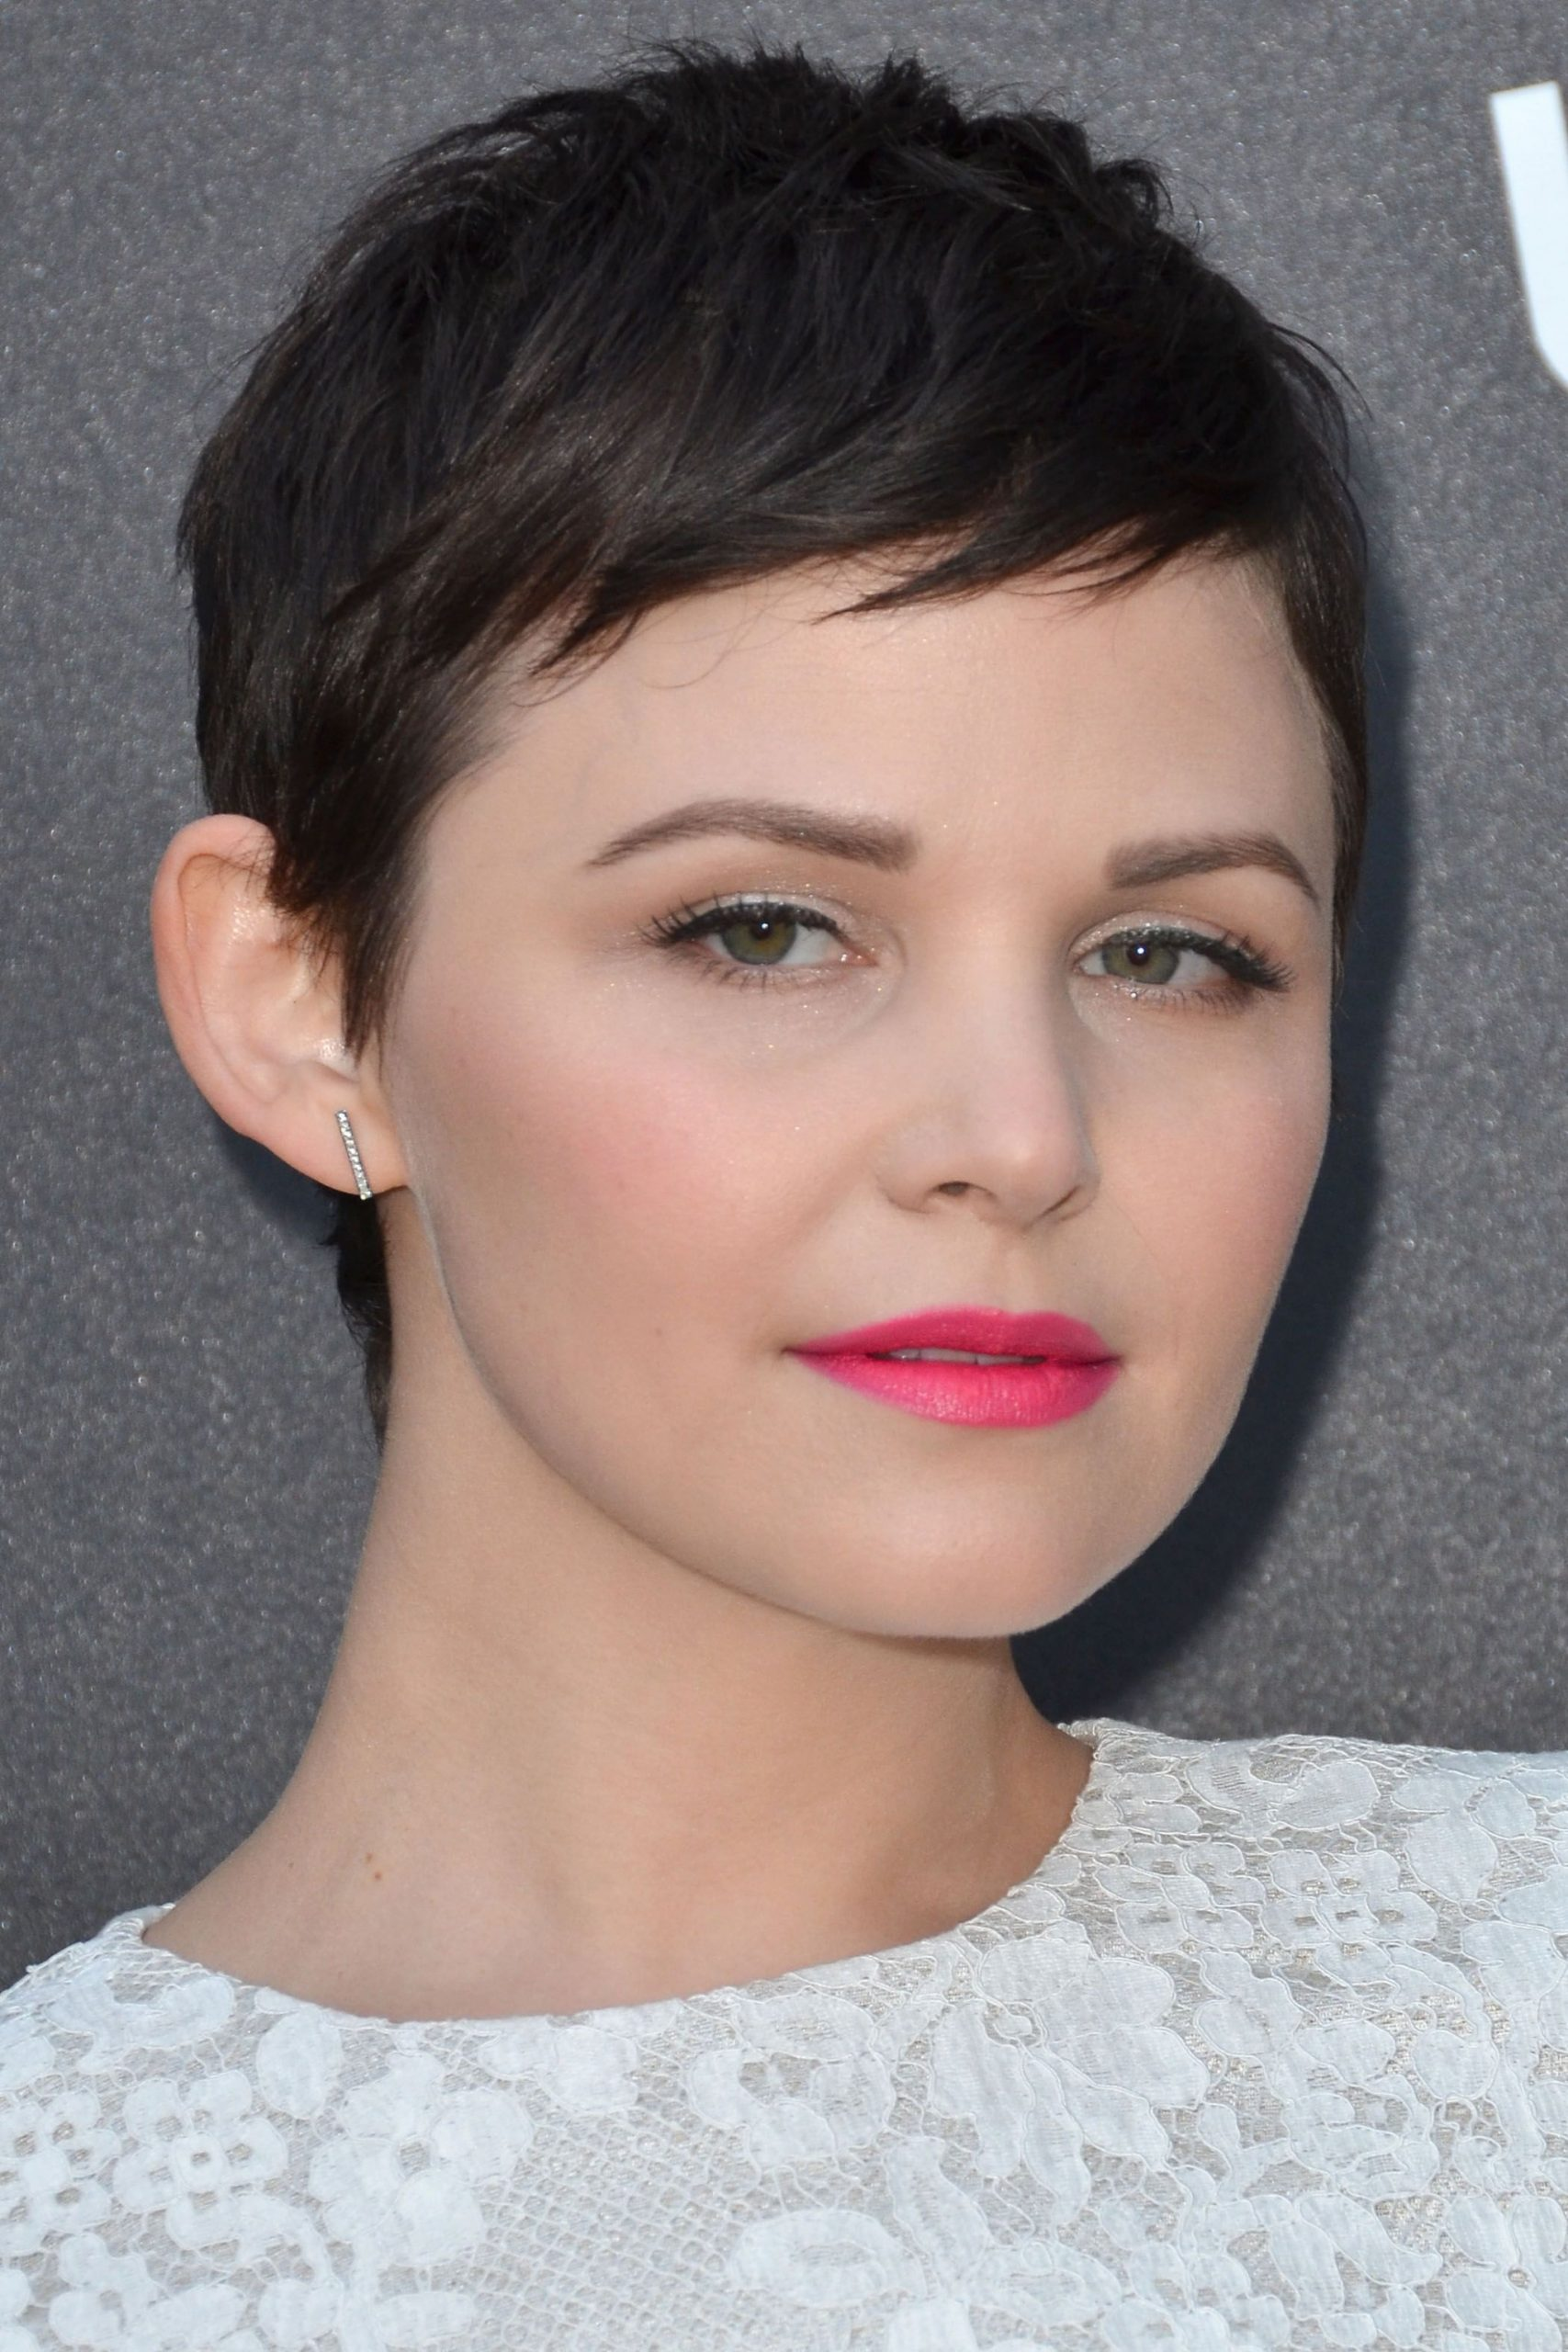 """Pin On """"Short Hair Removes Obvious Femininity And Replaces It With Ginnifer Goodwin Pixie Cut"""